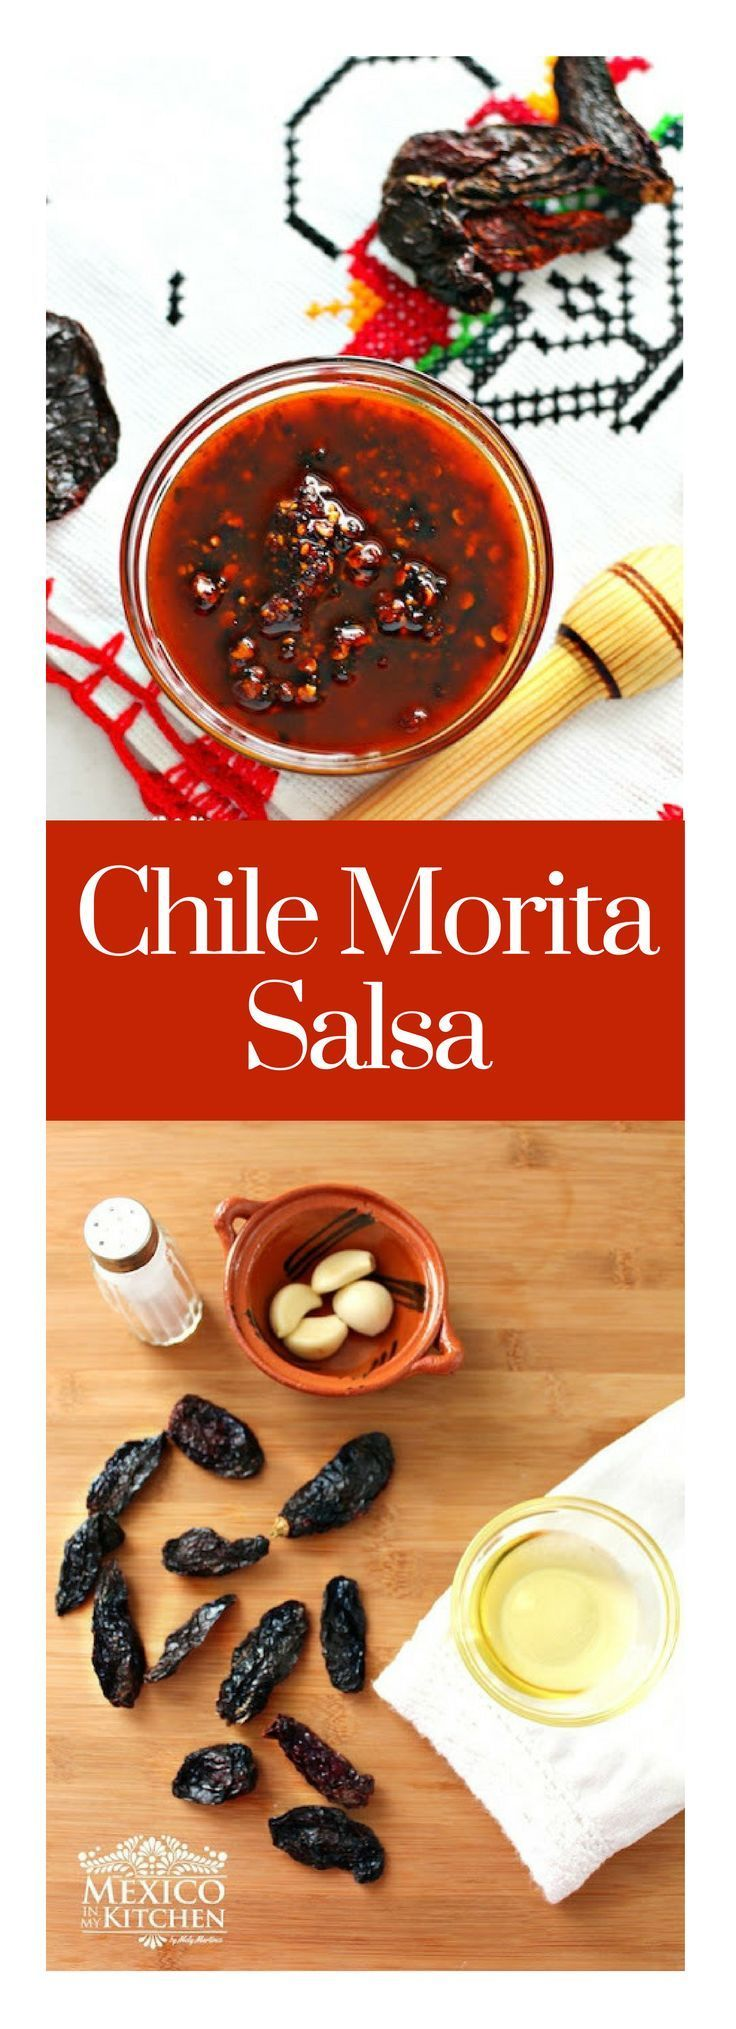 Salsa Macha is made out of dried peppers that are gently fried and then ground to form the sauce. #mexicancuisine #mexicancuisine #mexicanrecipes #salsa #chiles